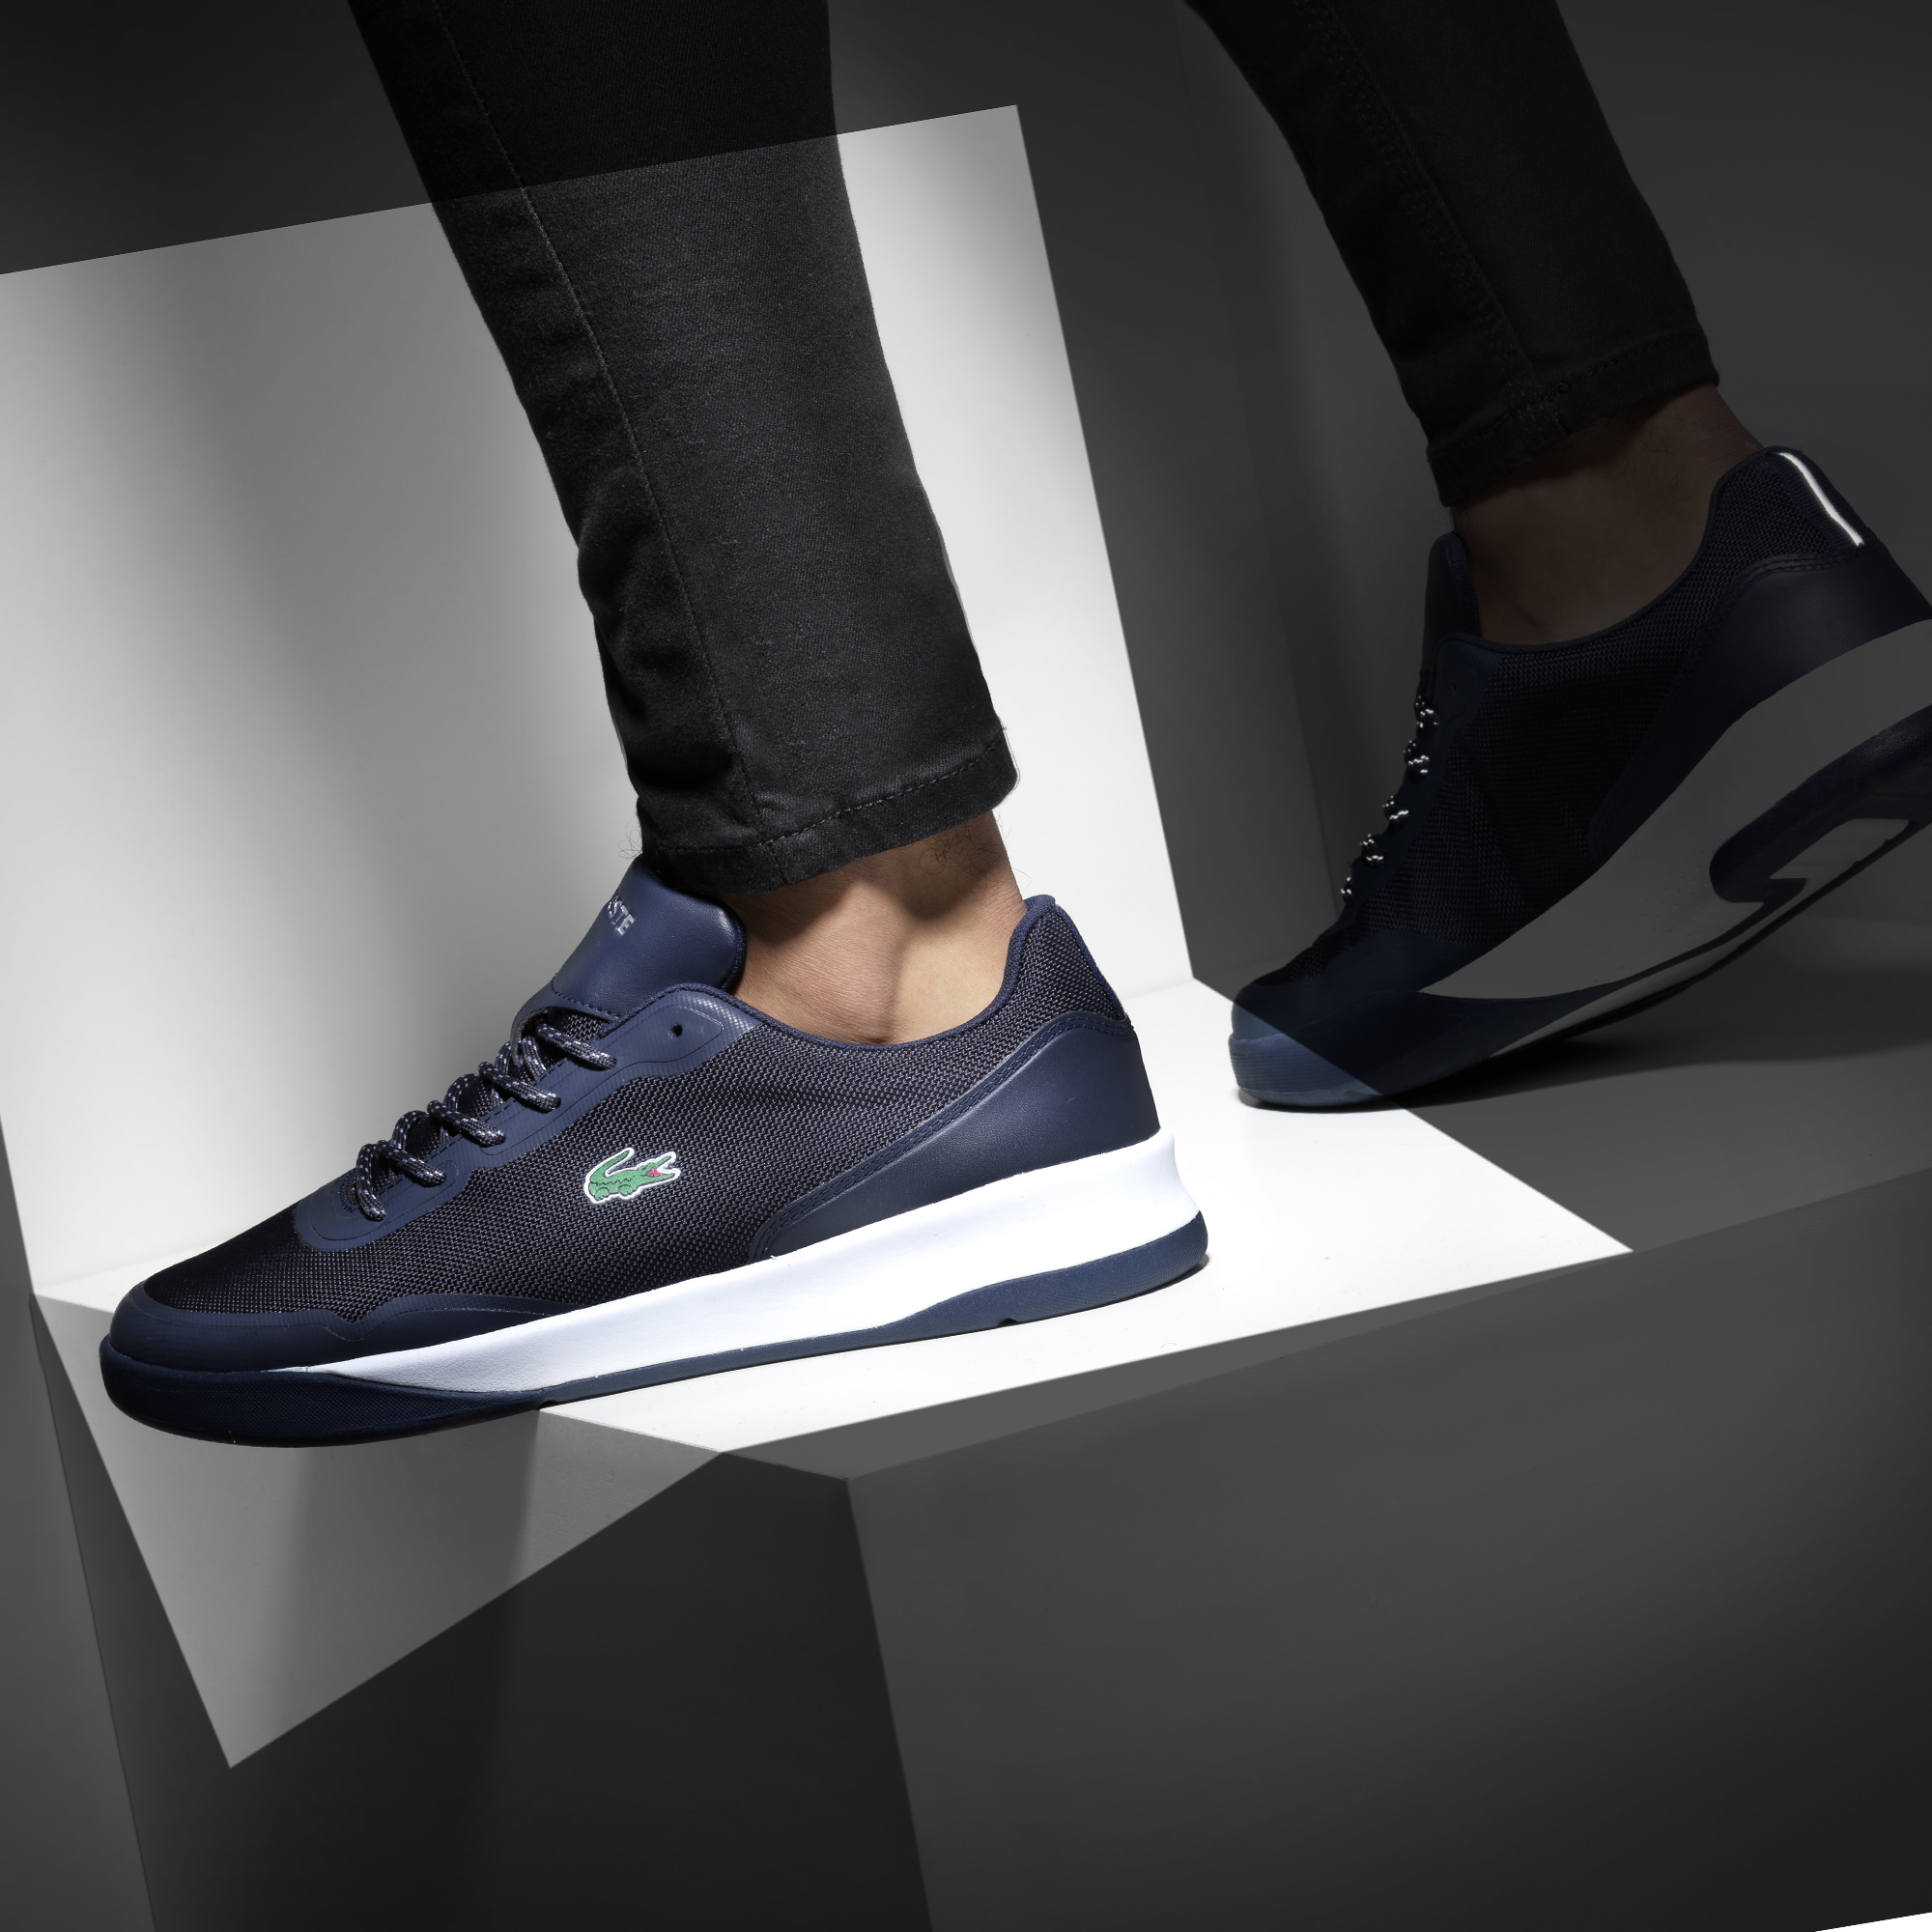 creme-creative-lacoste-reflective-pack-8.jpg